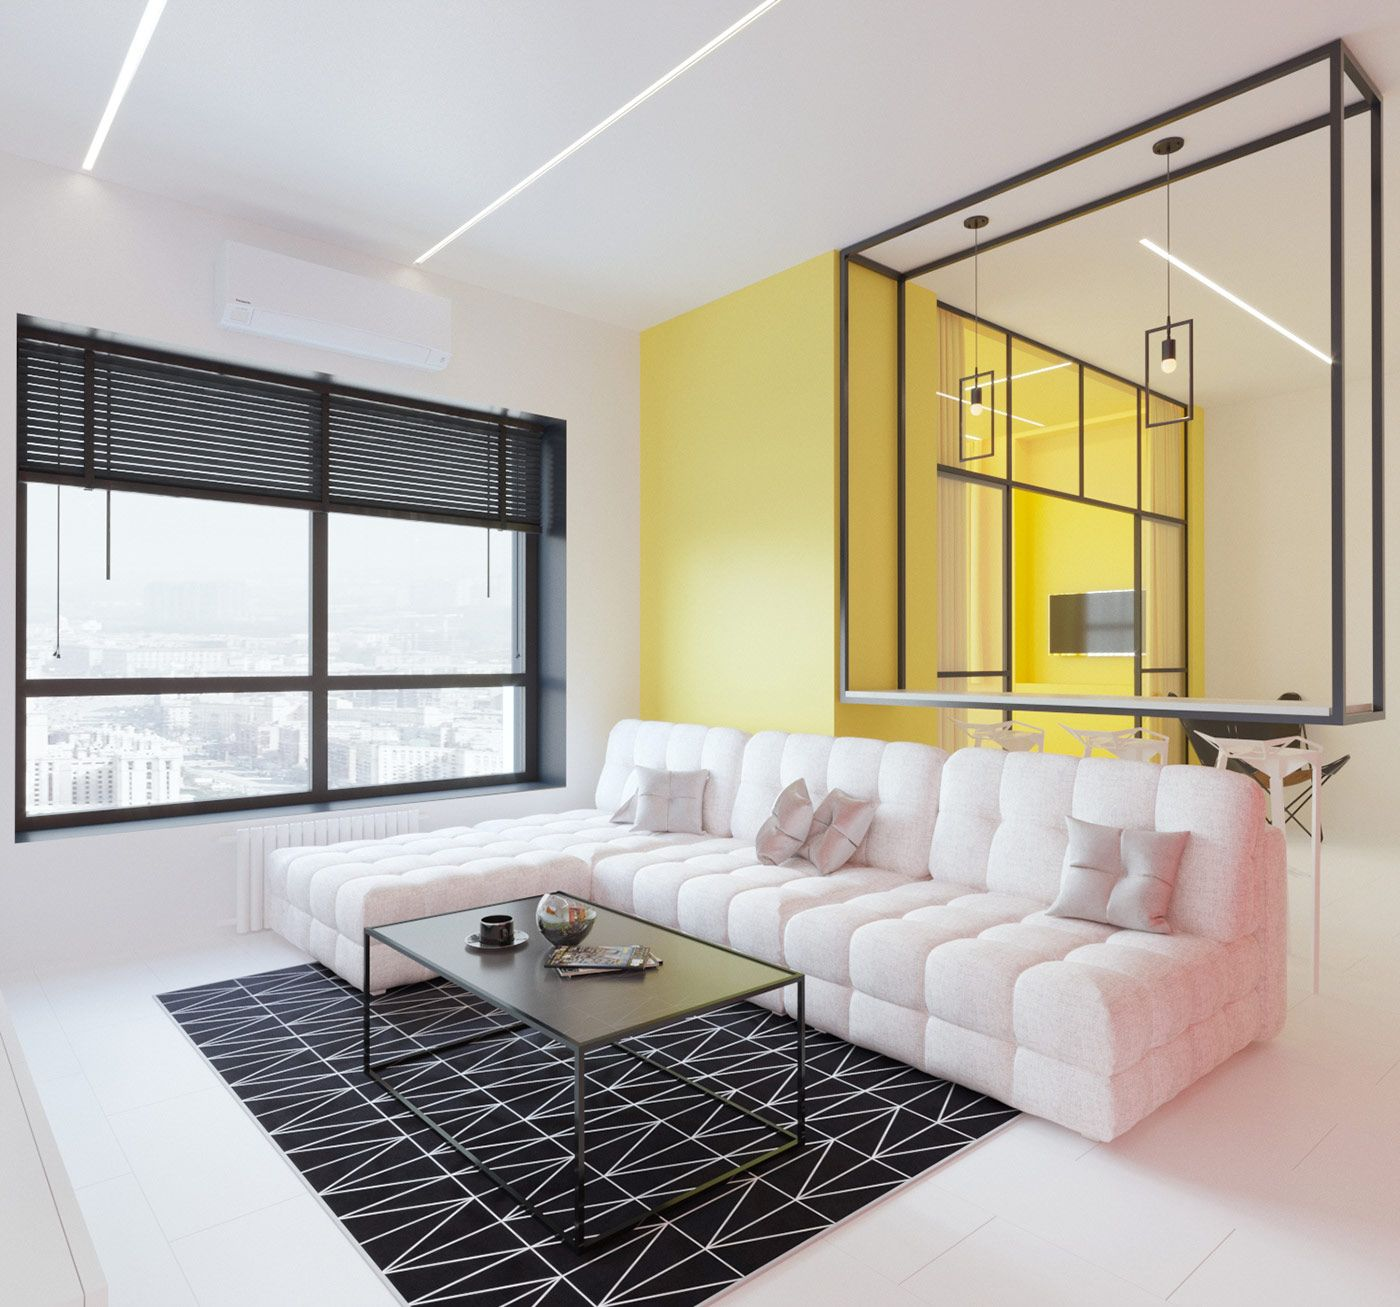 mondrian inspired interior with modern geometric accents design rh pinterest com